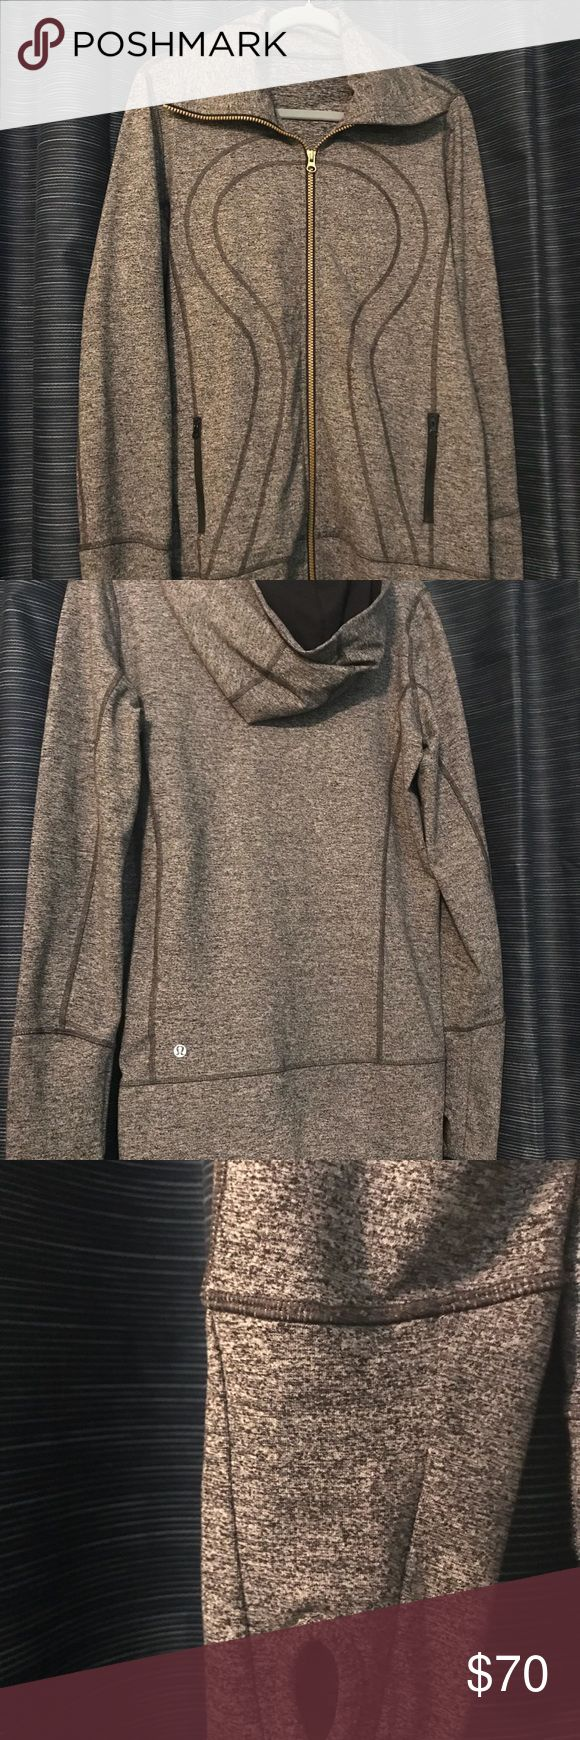 Heathered Gray Lululemon Hoodie Heathered gray Lululemon hoodie - perfect for running or wearing to and from the gym. Excellent condition - it's mostly been sitting in my closet. lululemon athletica Tops Sweatshirts & Hoodies